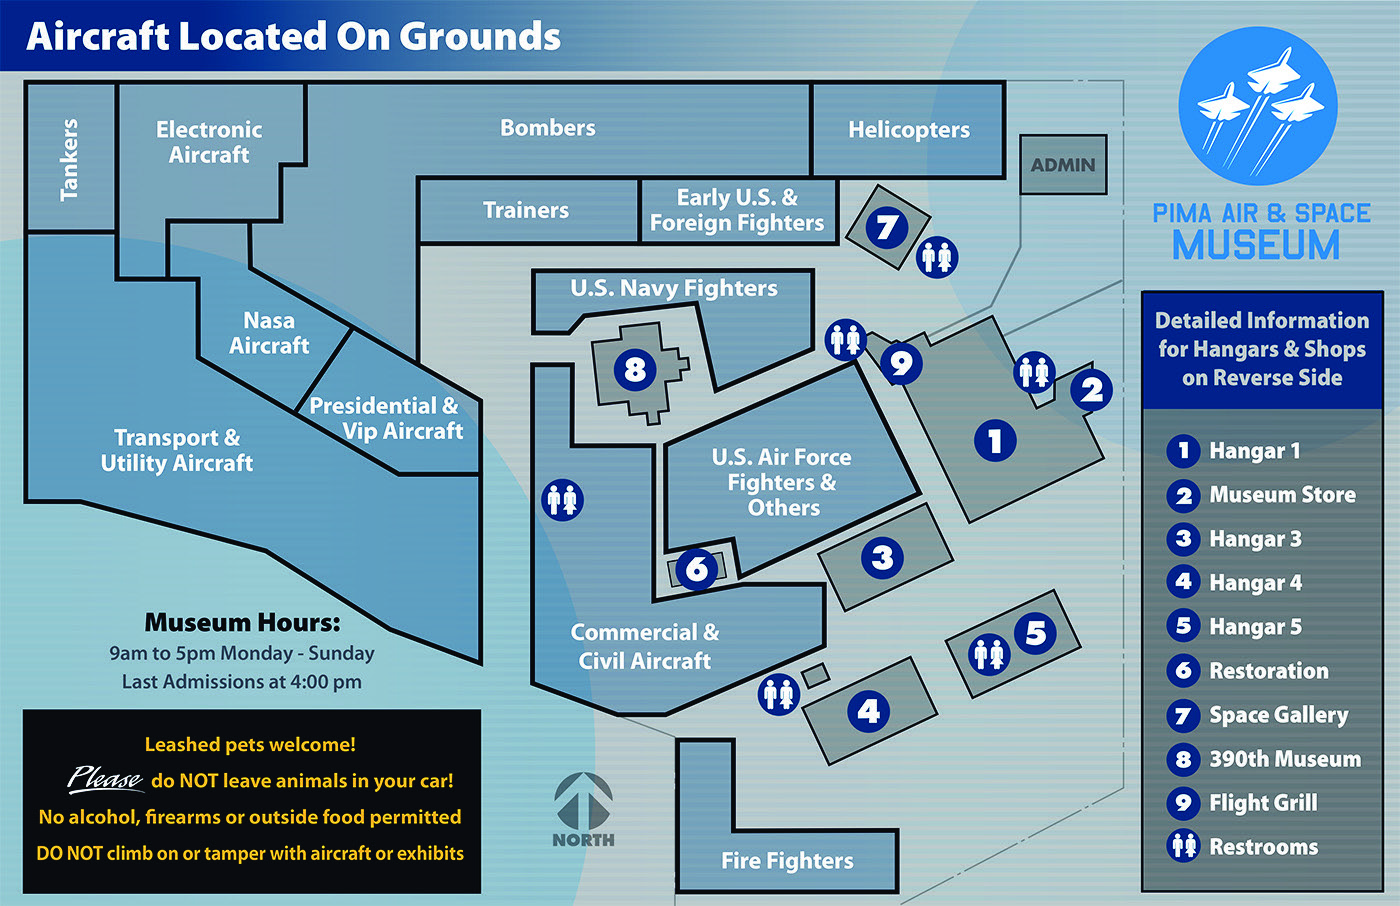 Aircraft located on the grounds (Map)